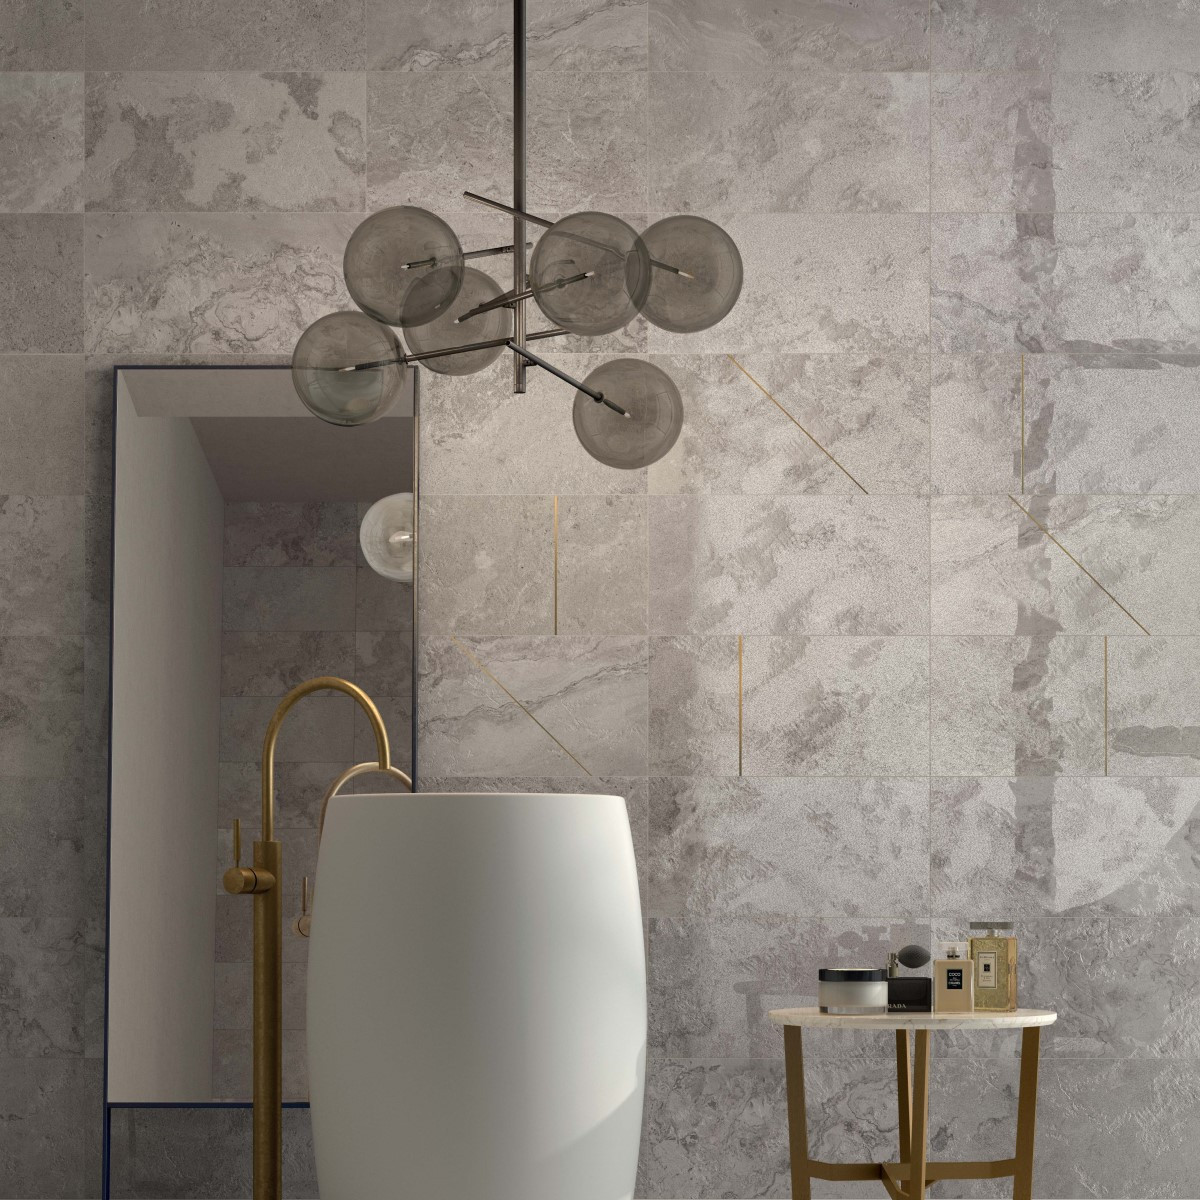 Alpes raw Grey lapp. 30x60 + Alpes dec. Sign Grey mix 2 lapp. 30x60 Italian Grey Porcelain Bathroom Wall and Floor Tile